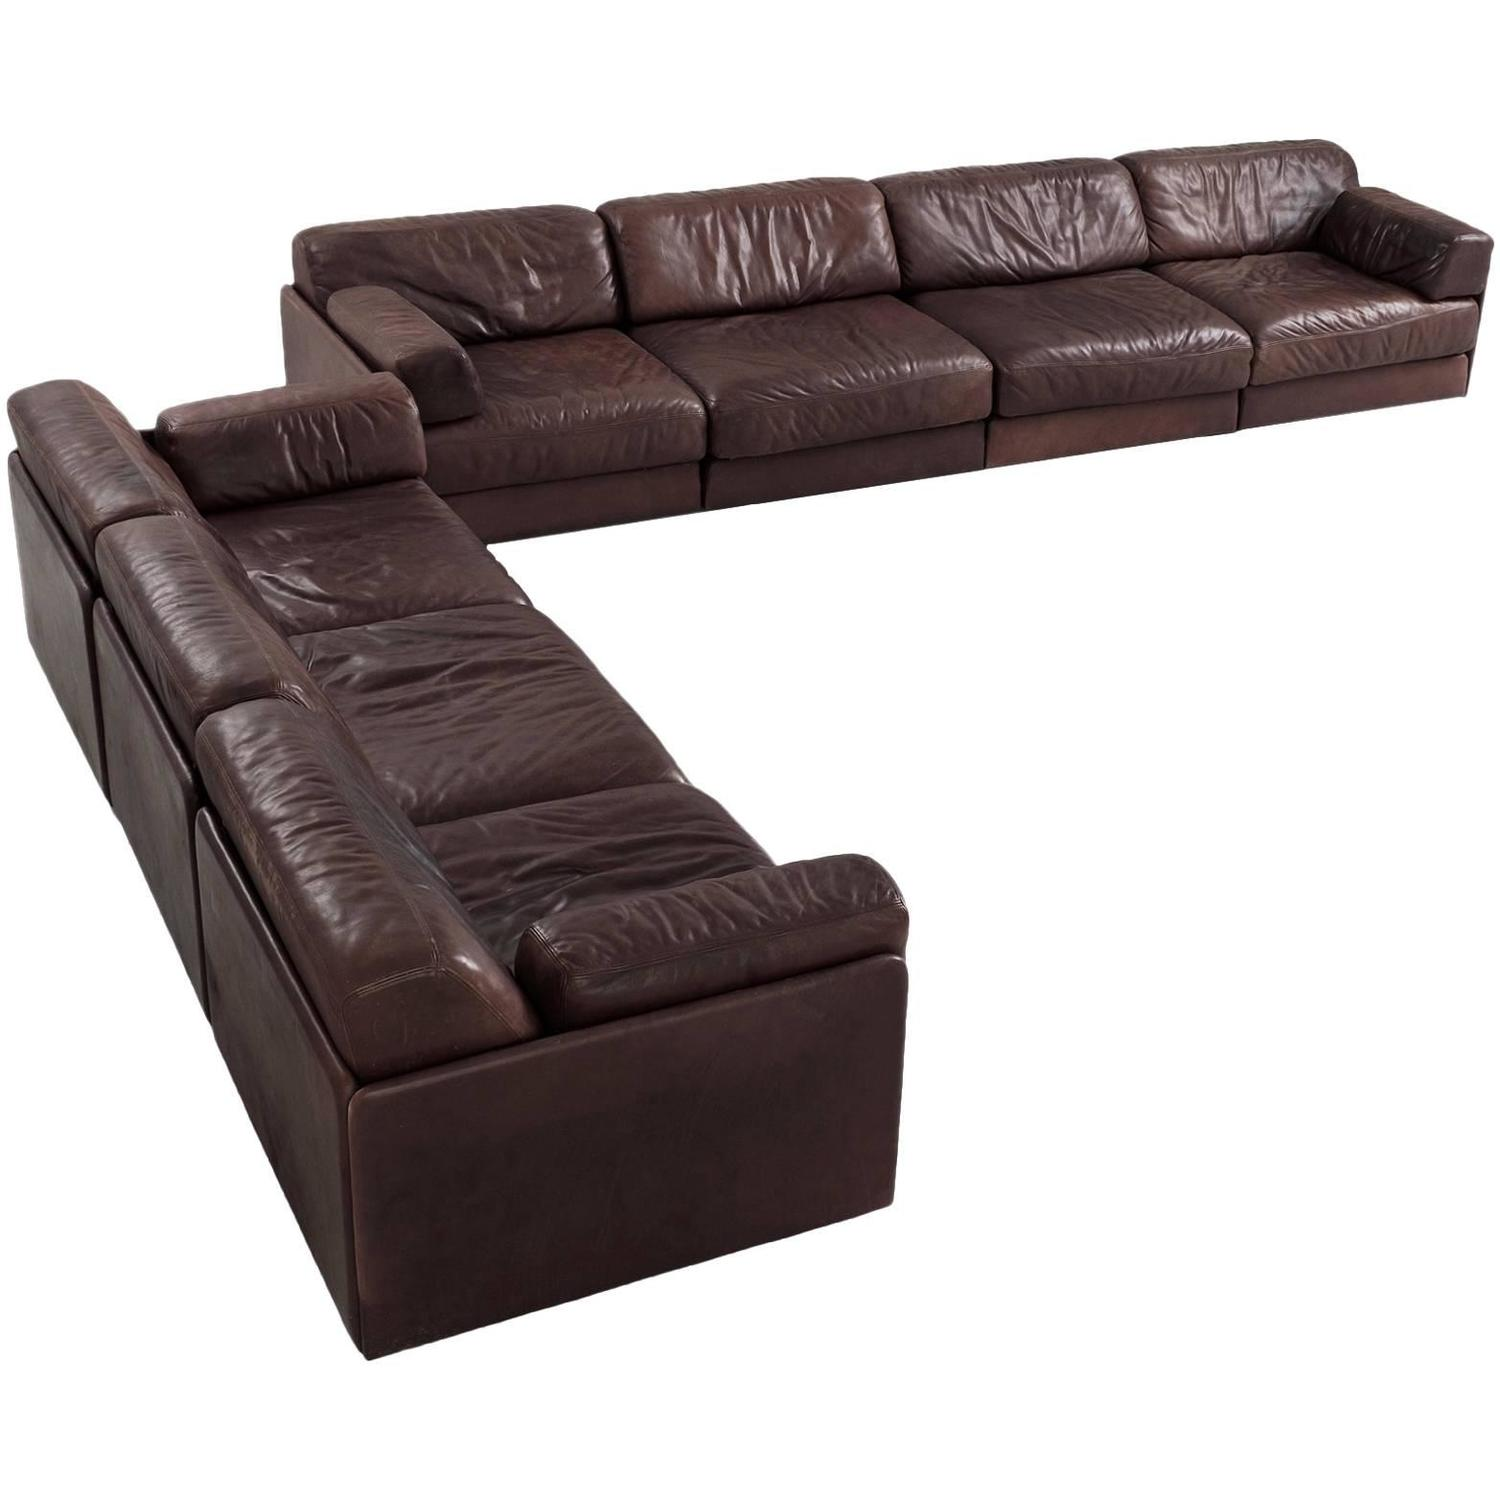 de sede ds 76 modular sofa in dark brown leather for sale at 1stdibs. Black Bedroom Furniture Sets. Home Design Ideas